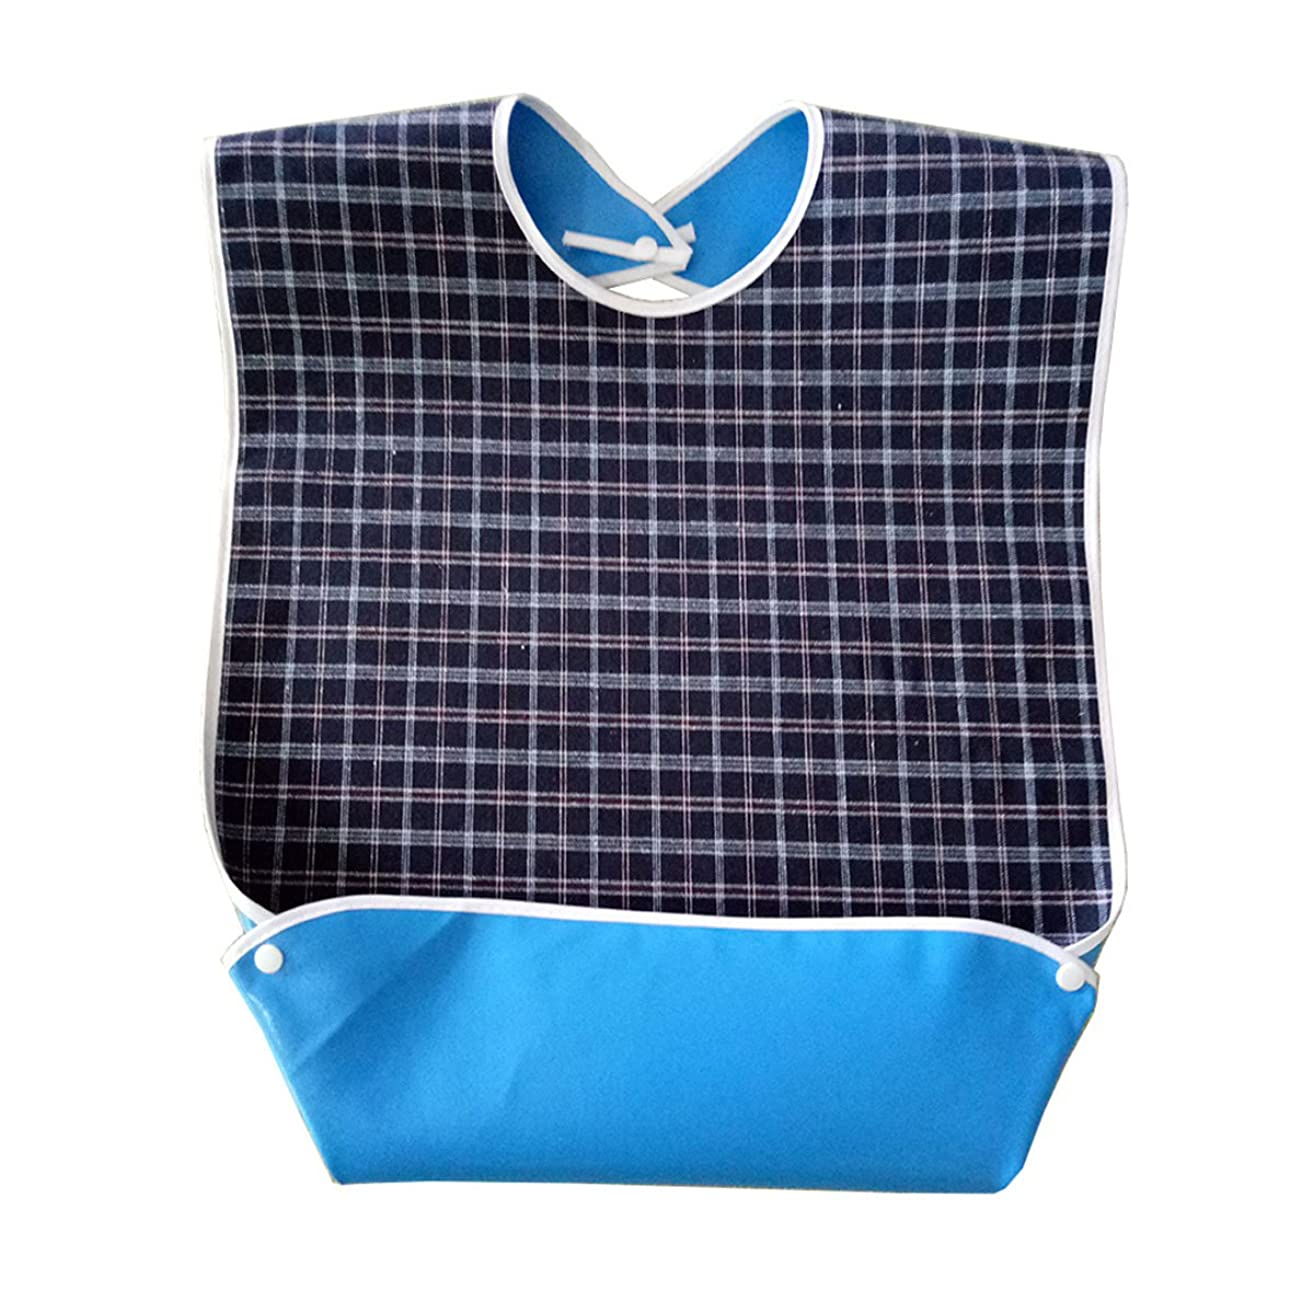 Adult Bib with Optional Crumb Catcher, Oenbopo Waterproof Backing Mealtime Clothing Protector Adult Aid Apron with Snaps for Elderly Patient Senior (Dark Blue)